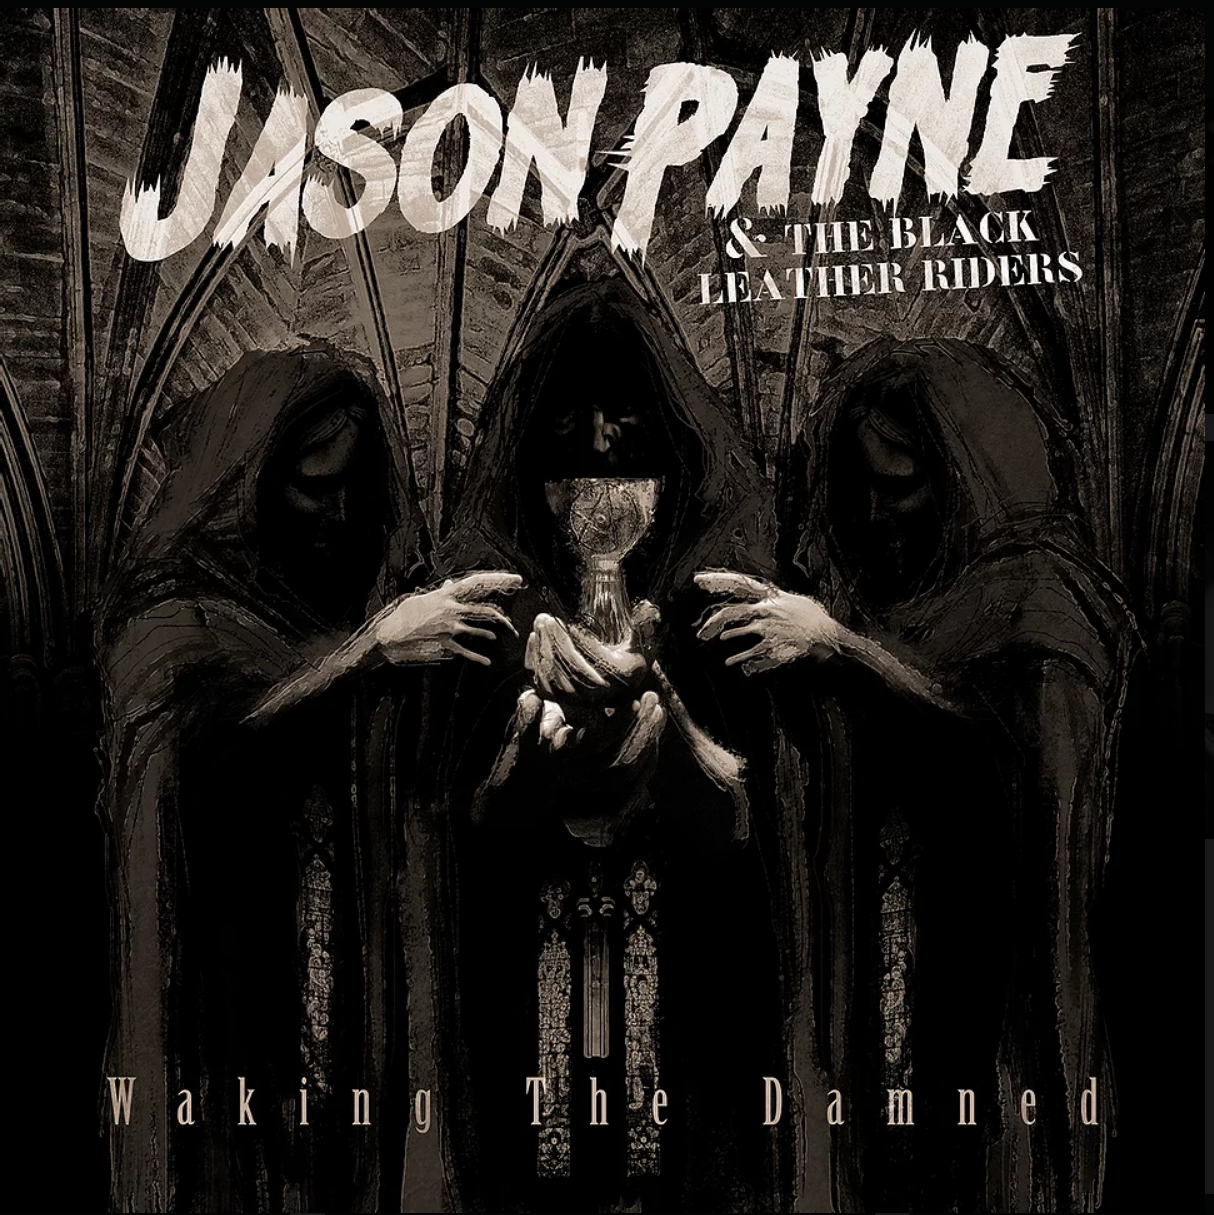 Talking With UK Melodic Metal Artist Jason Payne & The Black Leather Riders About His New Single